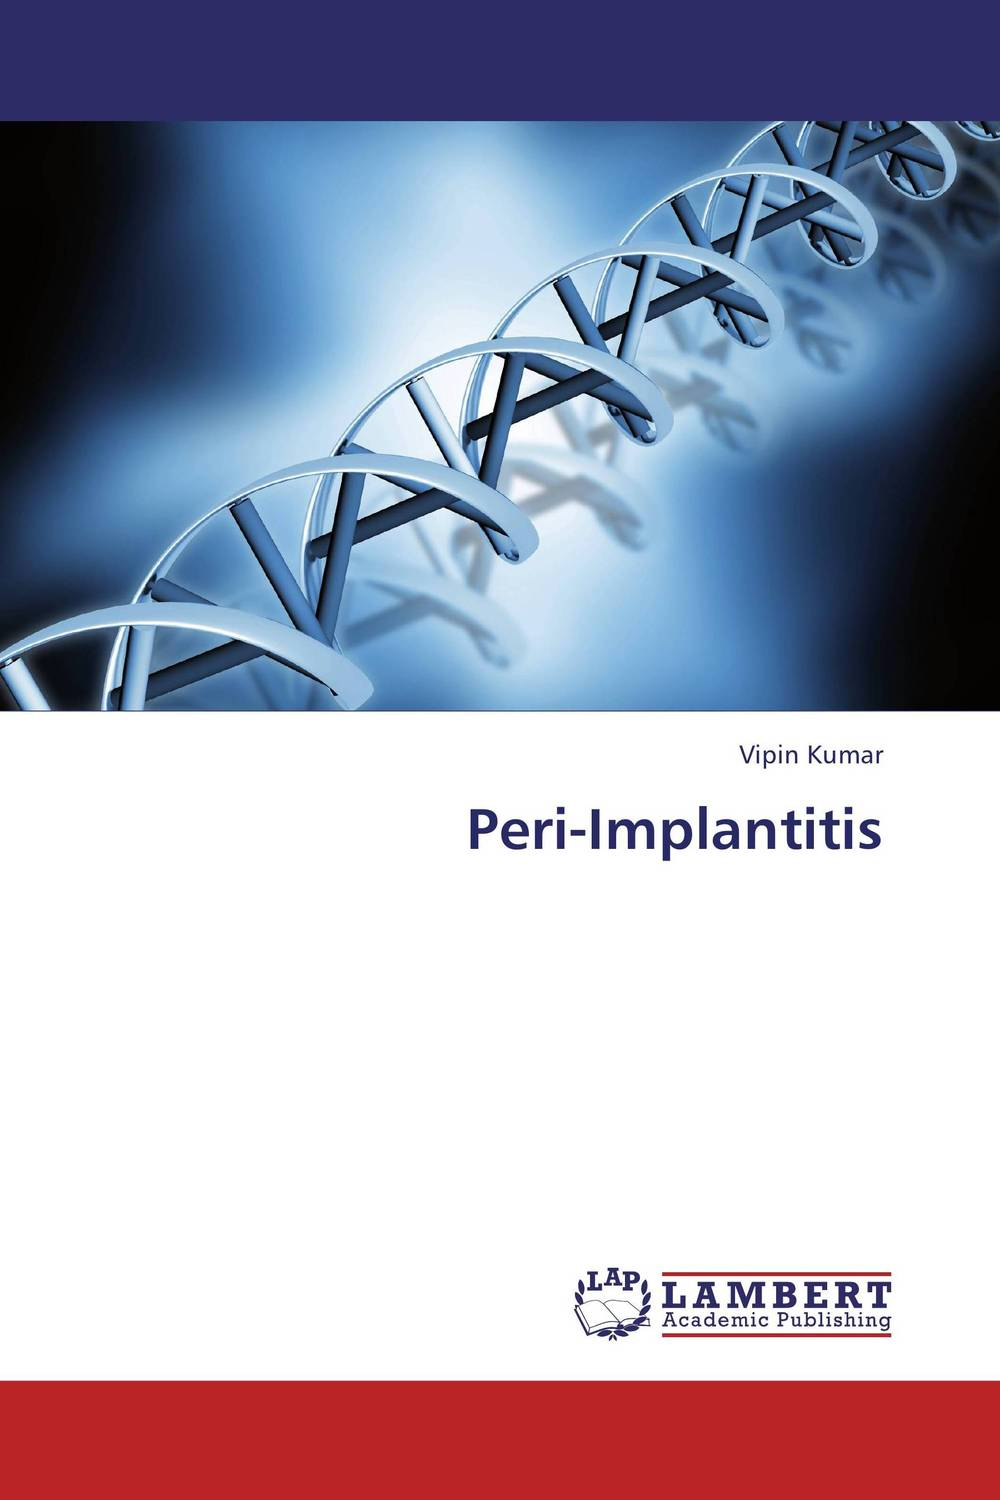 Peri-Implantitis attachments retaining implant overdentures